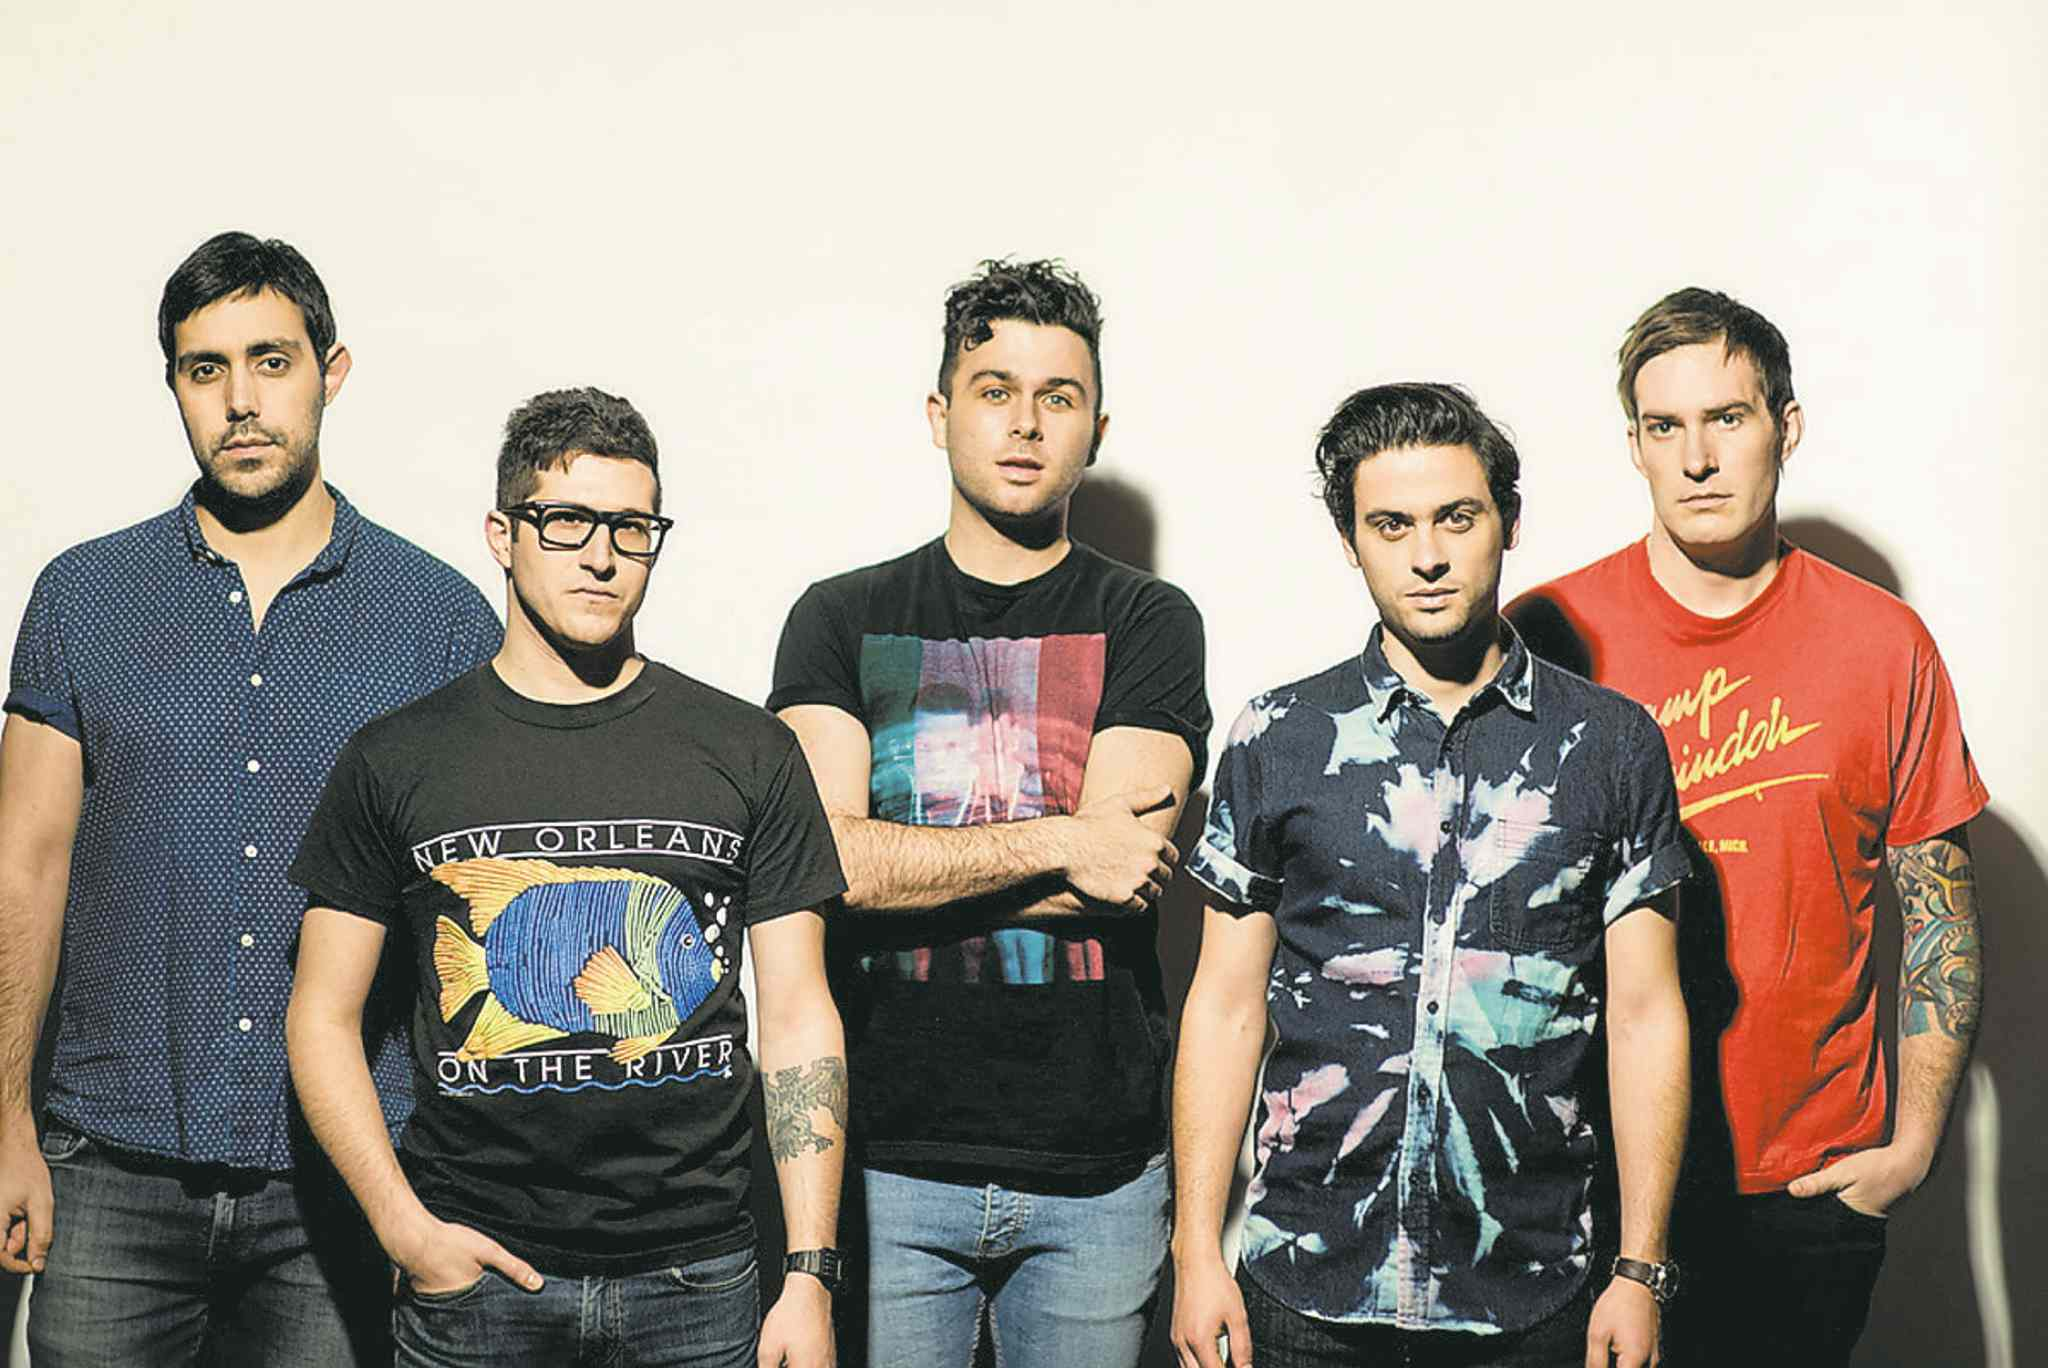 Brooks Reynolds / submitted photo; The Canadian Press filesThe Arkells (from left): Nick Dika (bass), Anthony Carone (keyboard), Max Kerman (lead vocals/guitar), Mike DeAngelis (vocals/guitar) and Tim Oxford (drums).